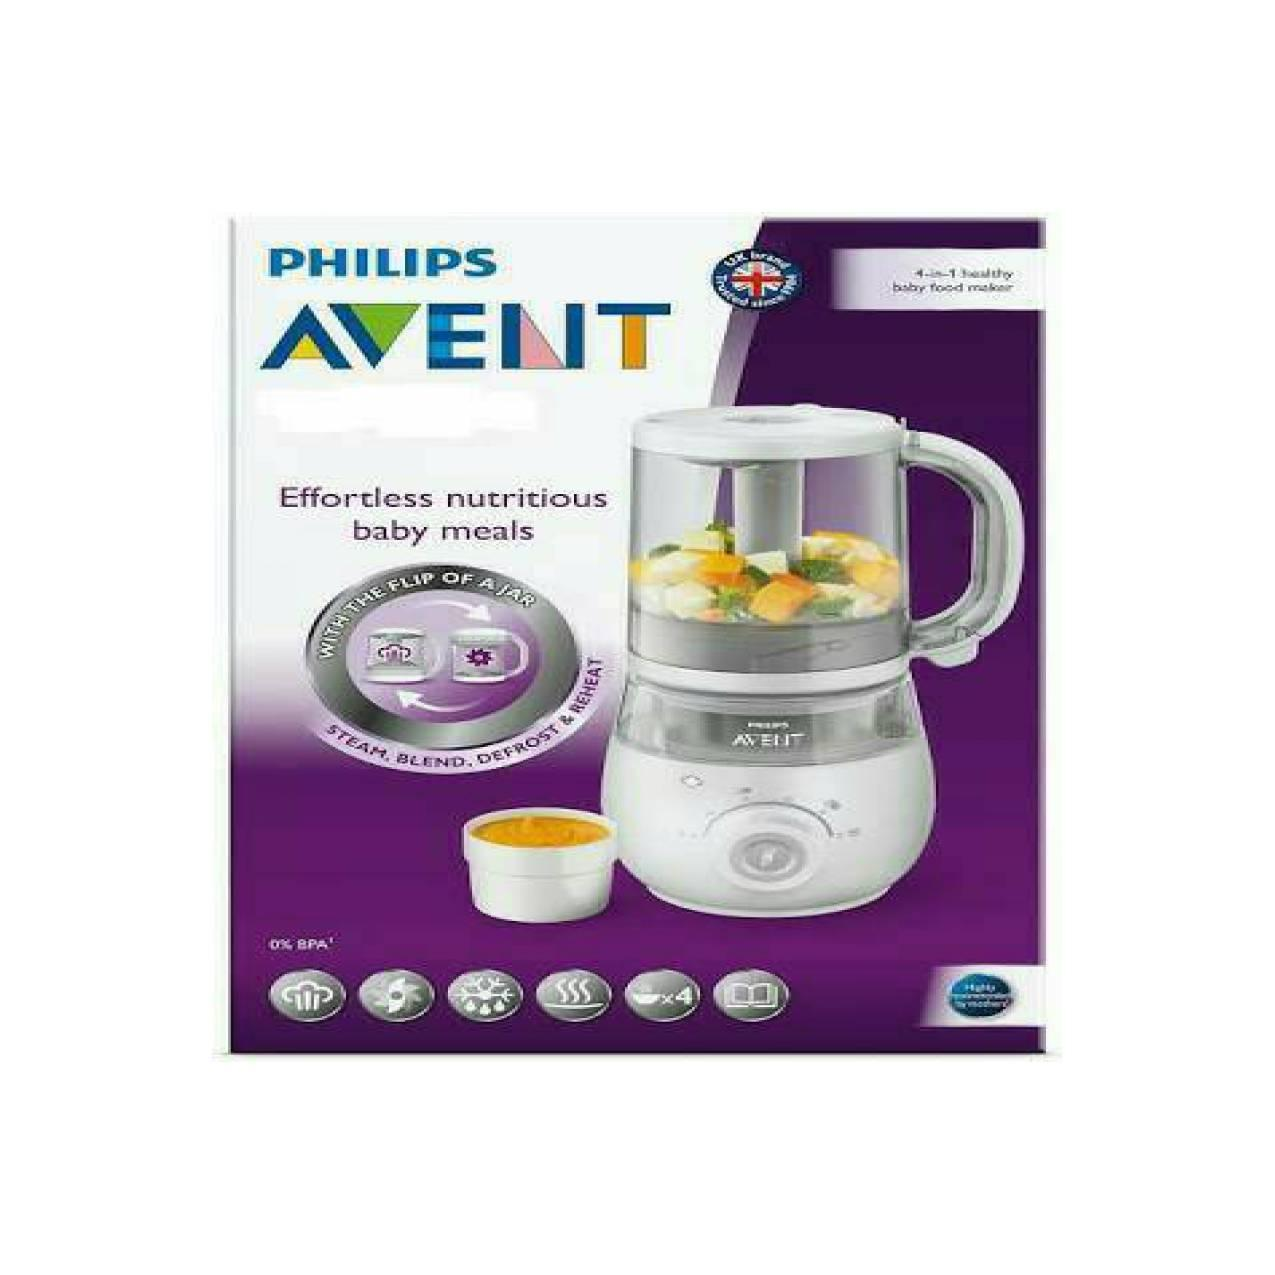 Philips Avent 4in1 healthy food blender